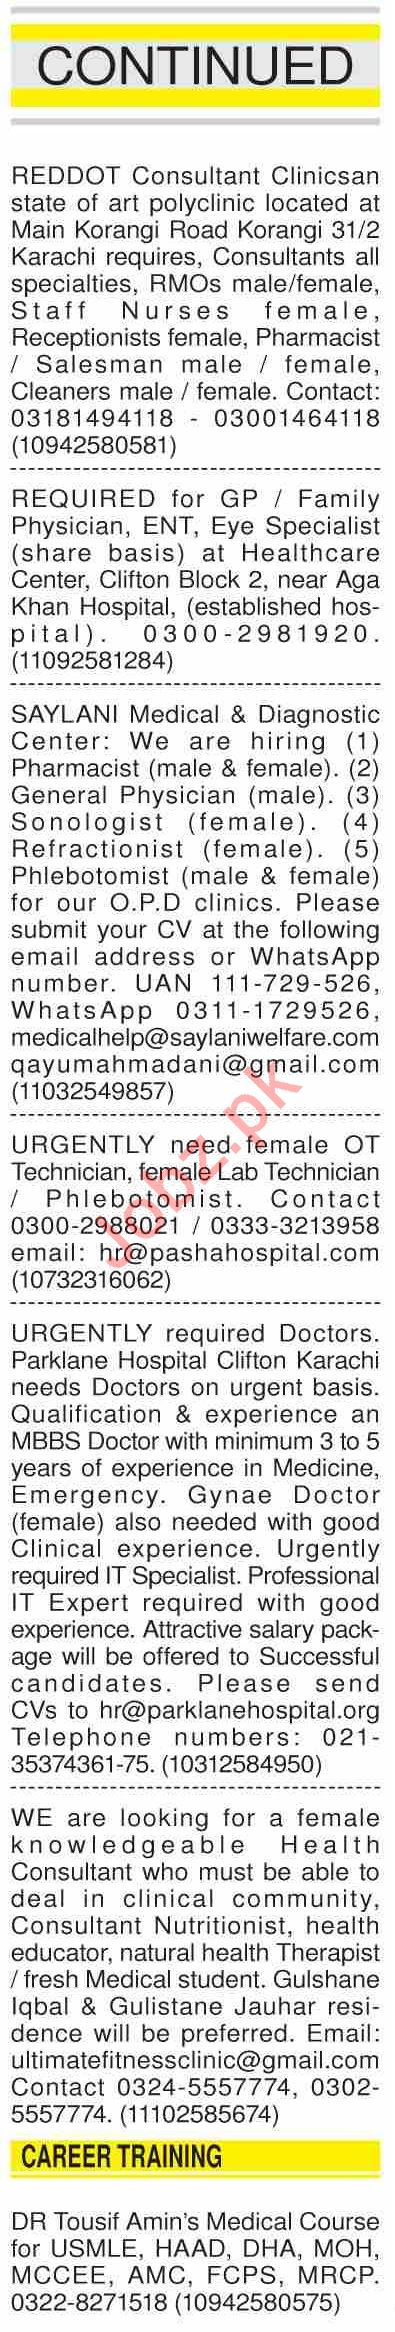 Dawn Sunday Classified Ads 15th March 2020 for Medical Staff